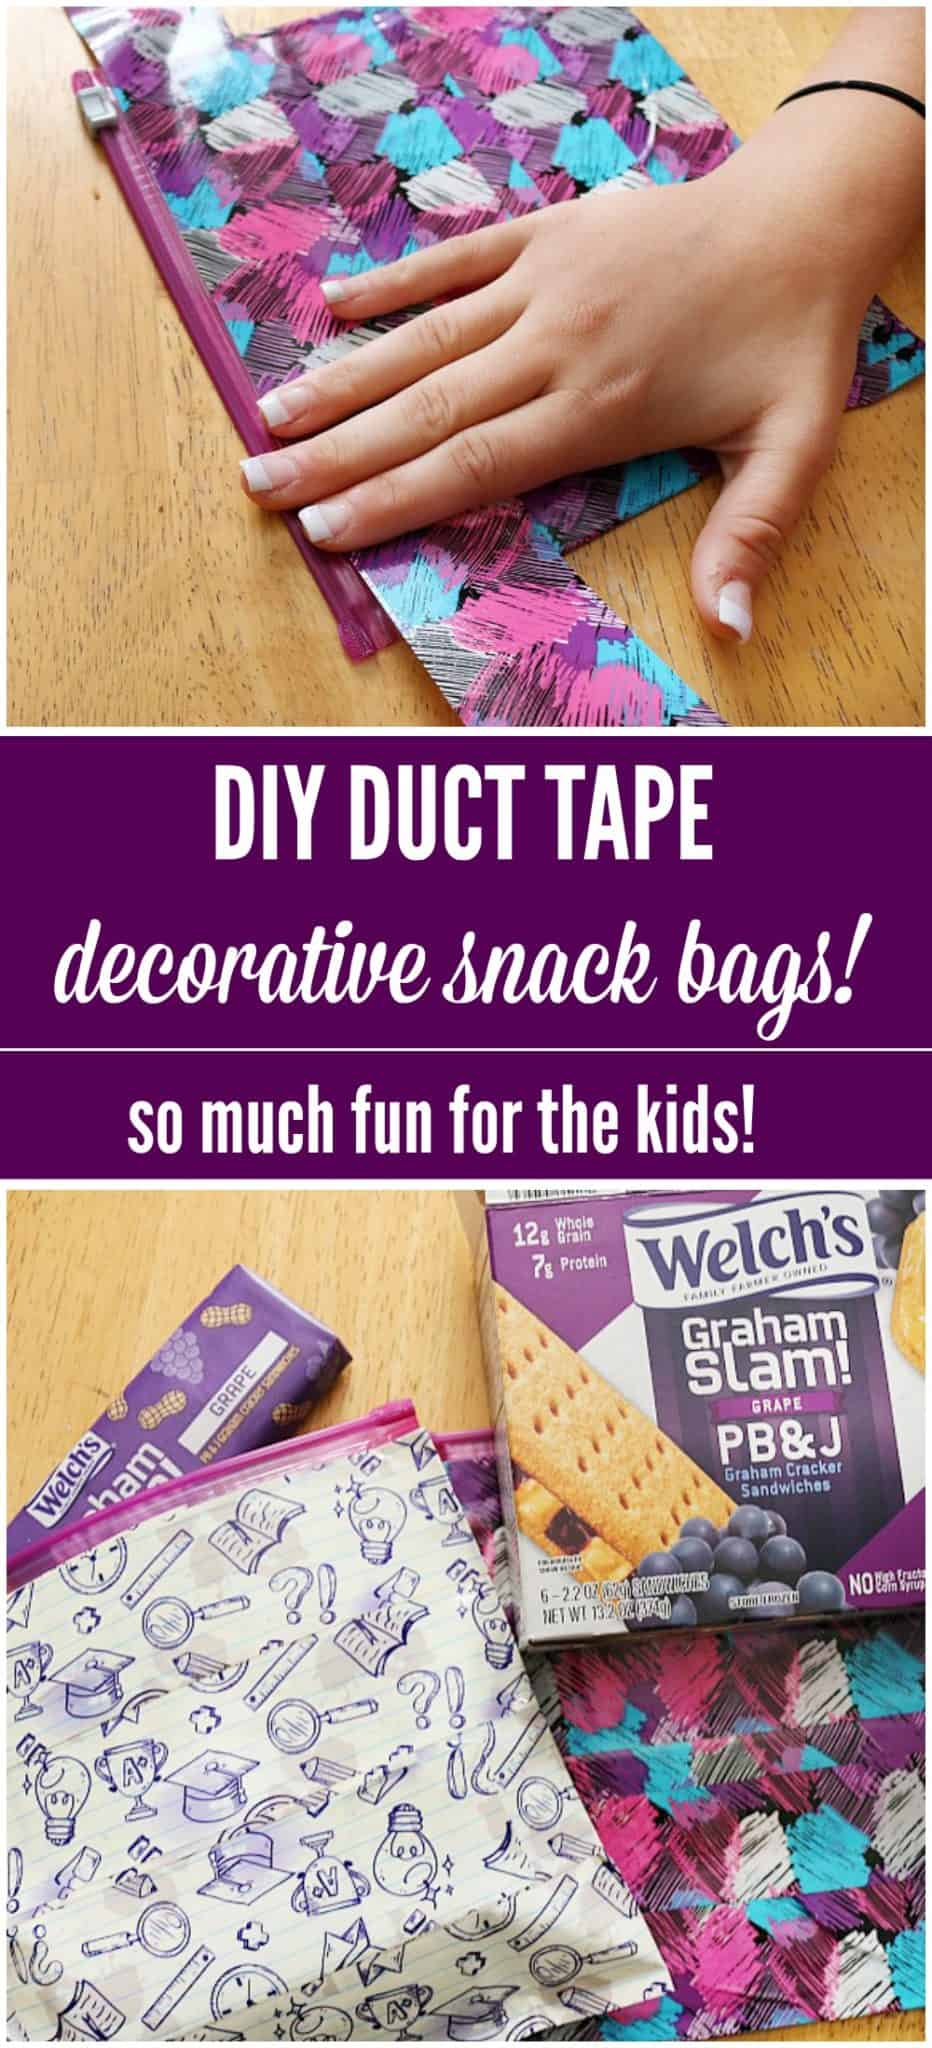 diy duct tape